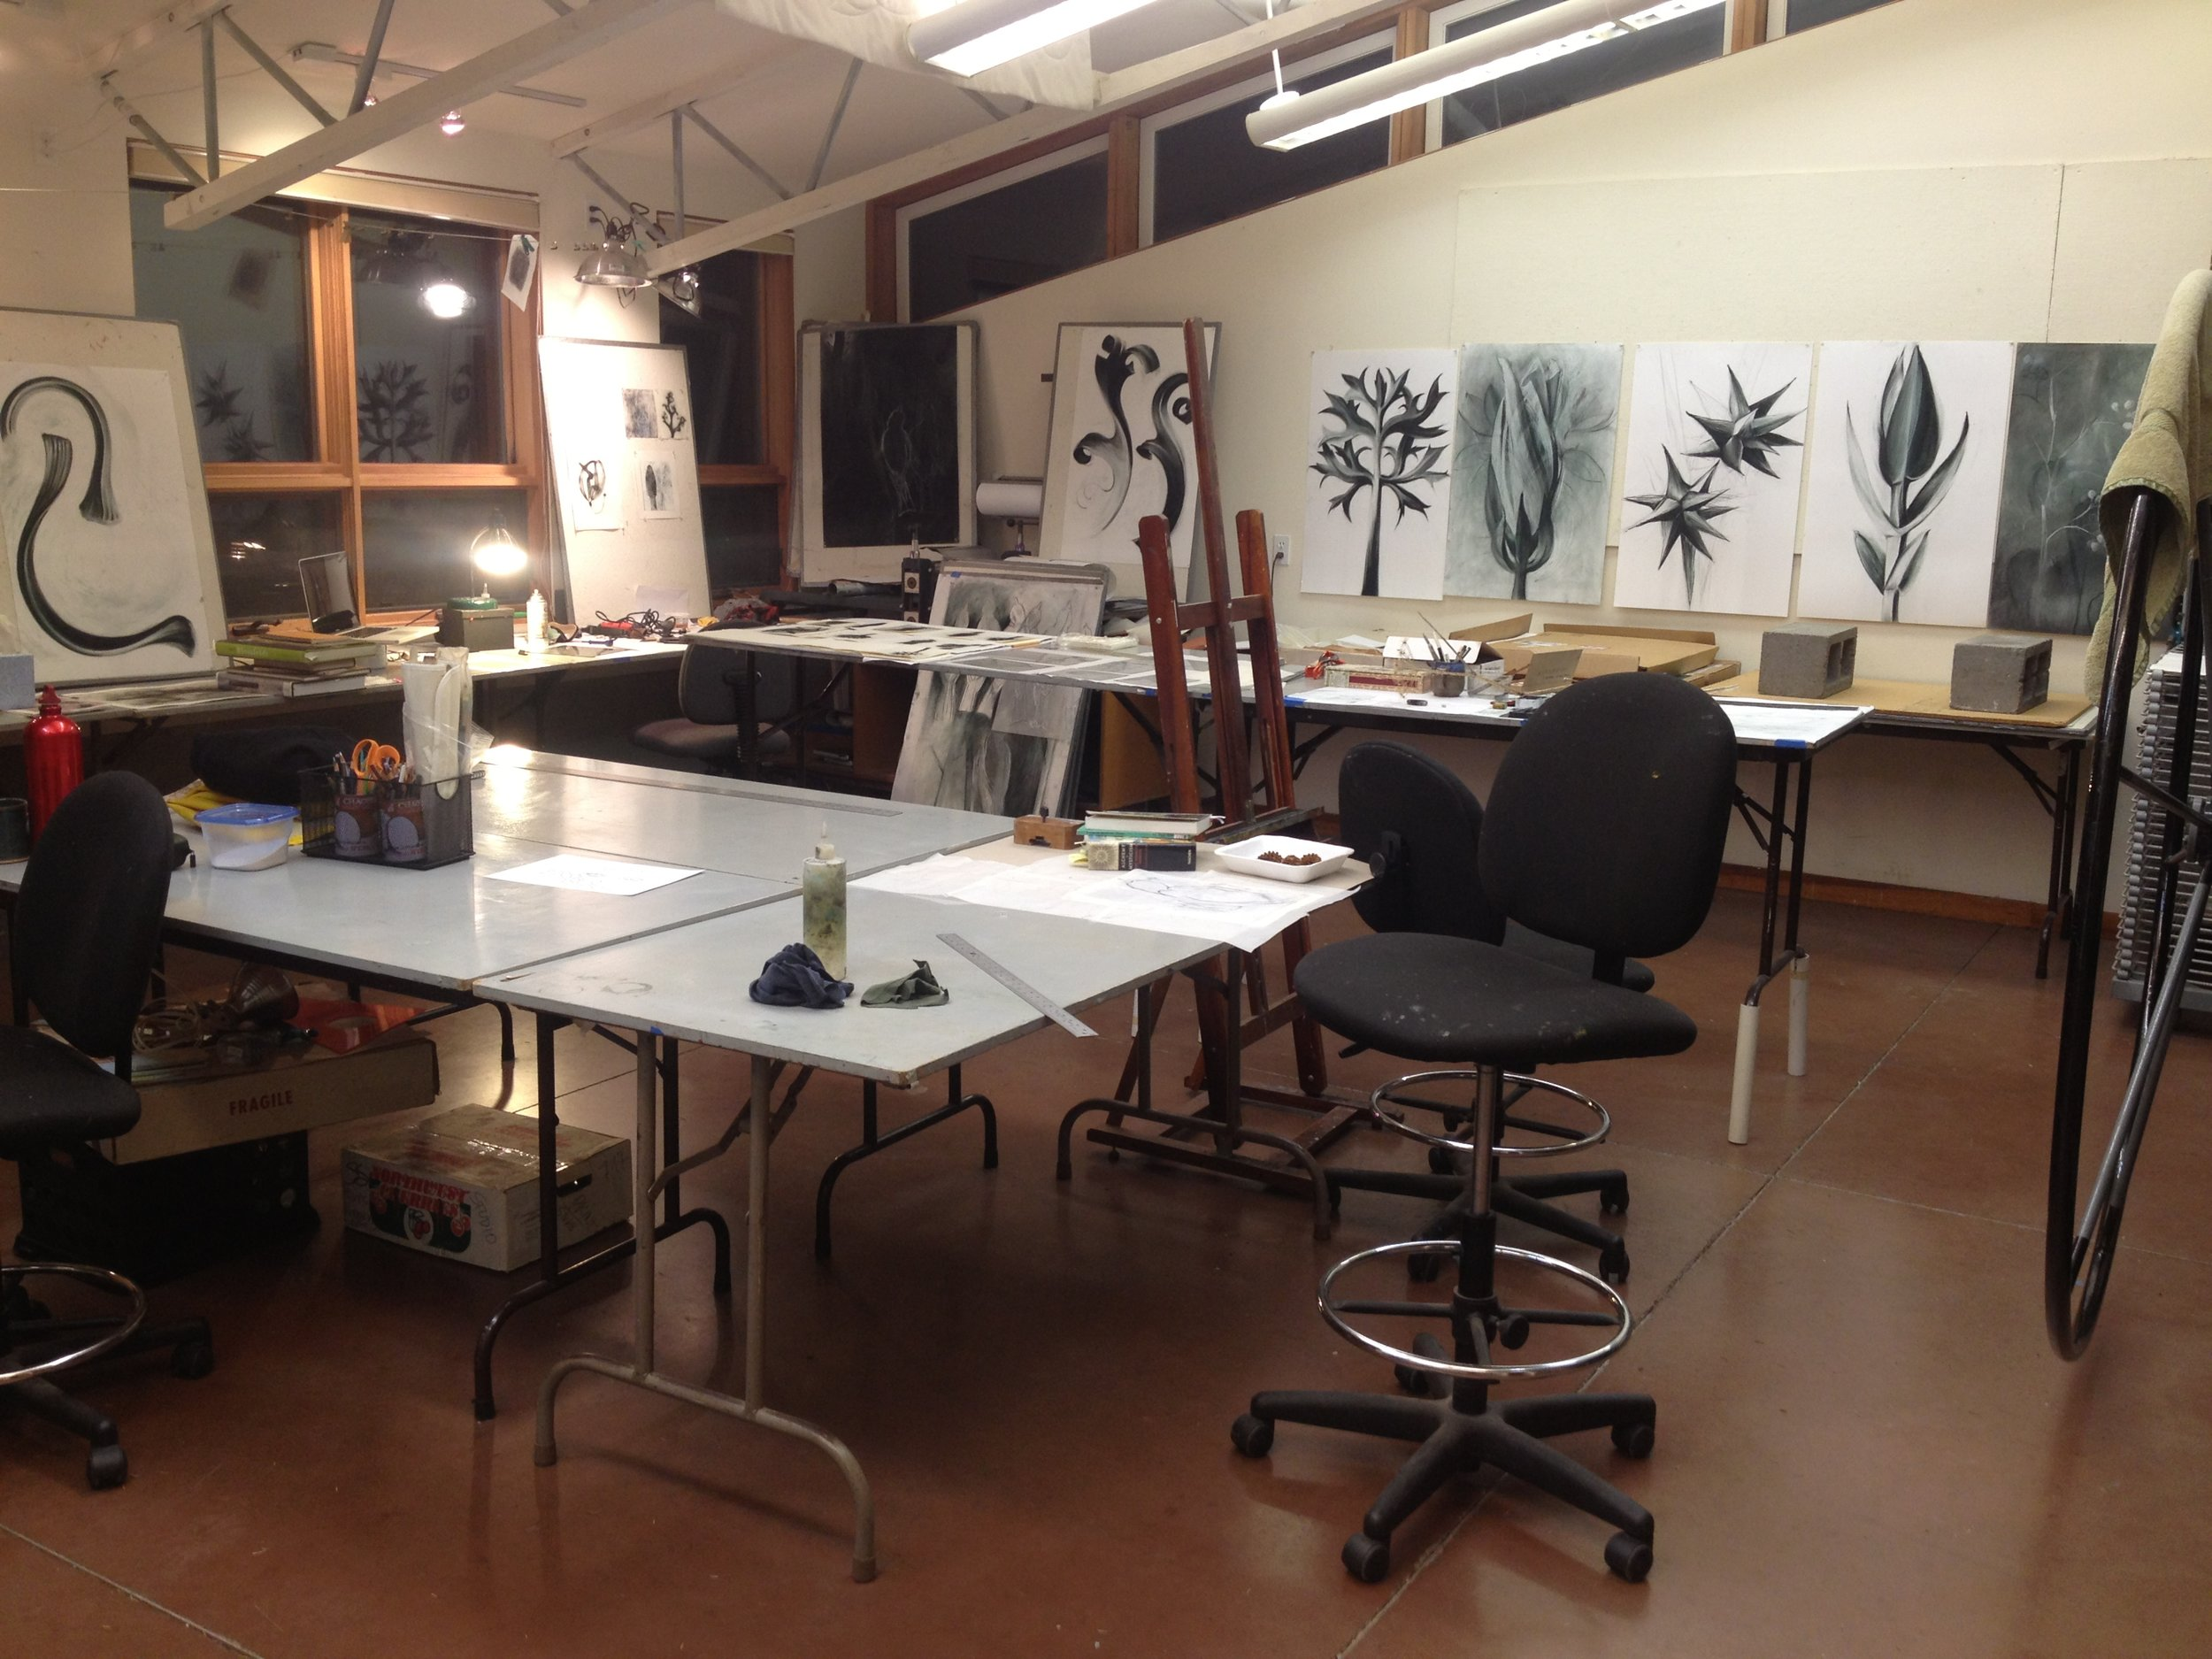 drawings and prints, sitka center for art and ecology residency, 2017